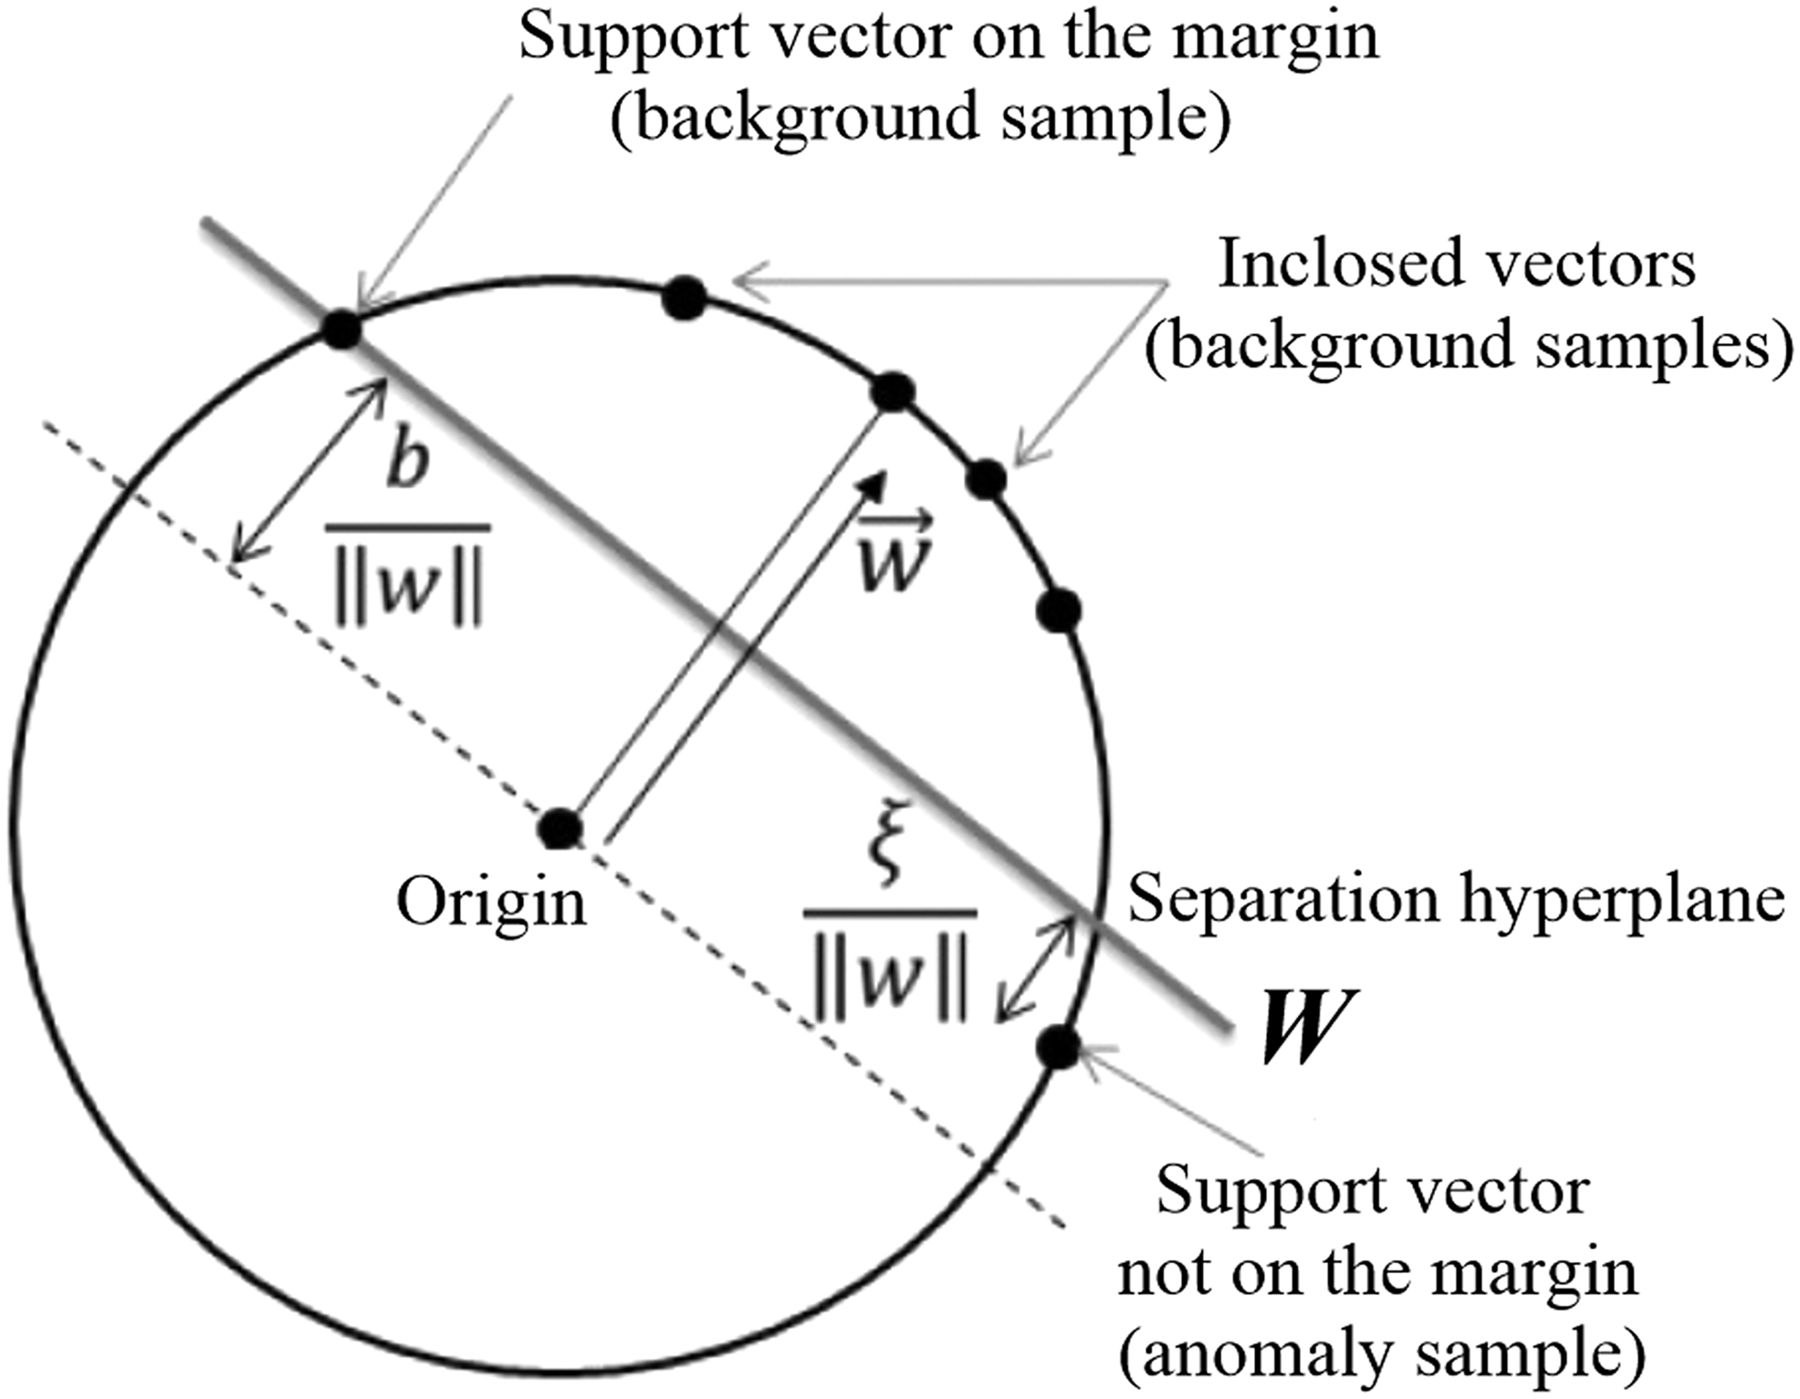 Application of one-class support vector machine to quickly